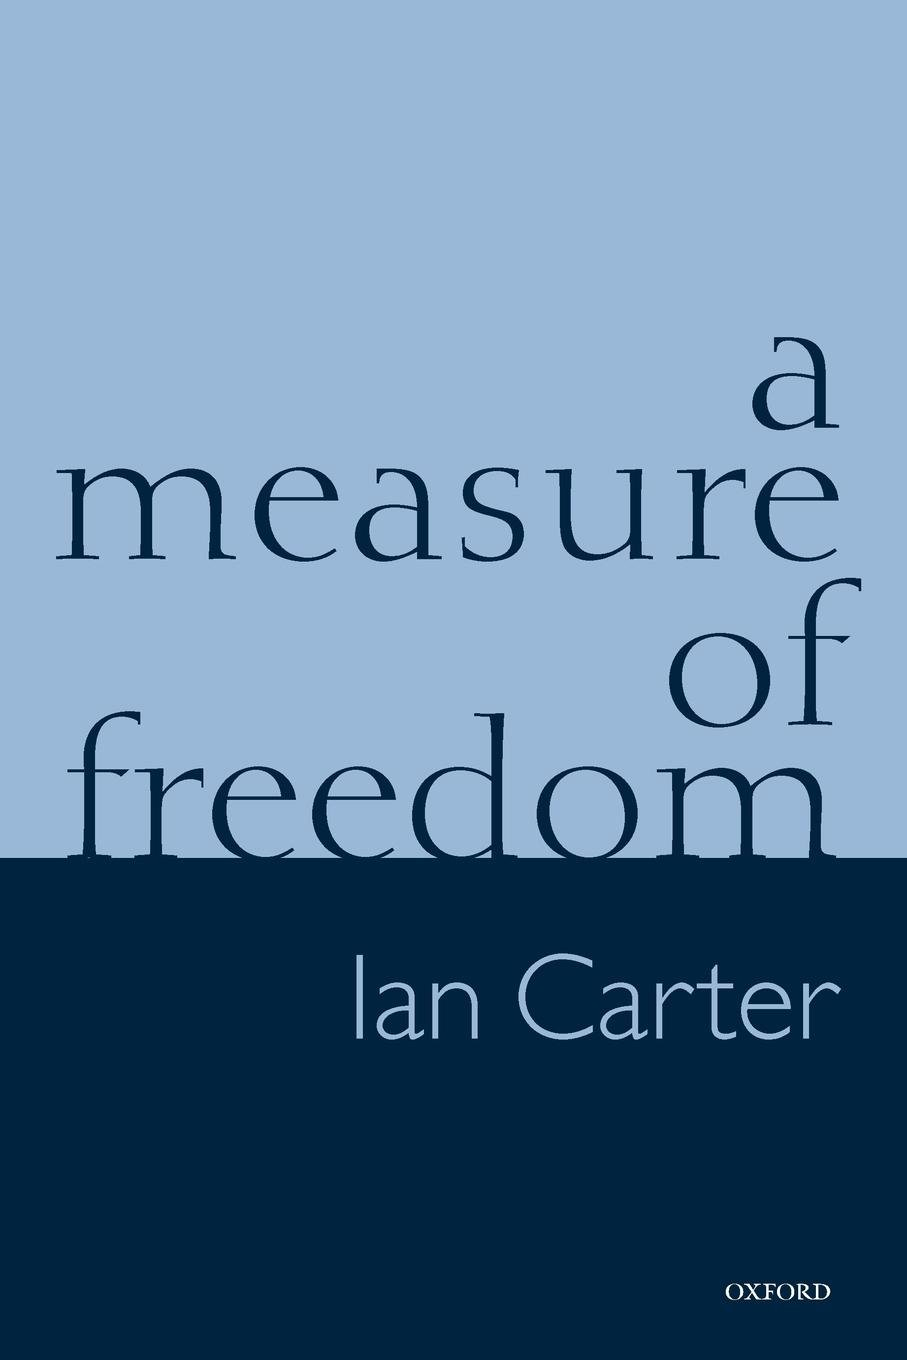 A Measure of Freedom by Ian Carter